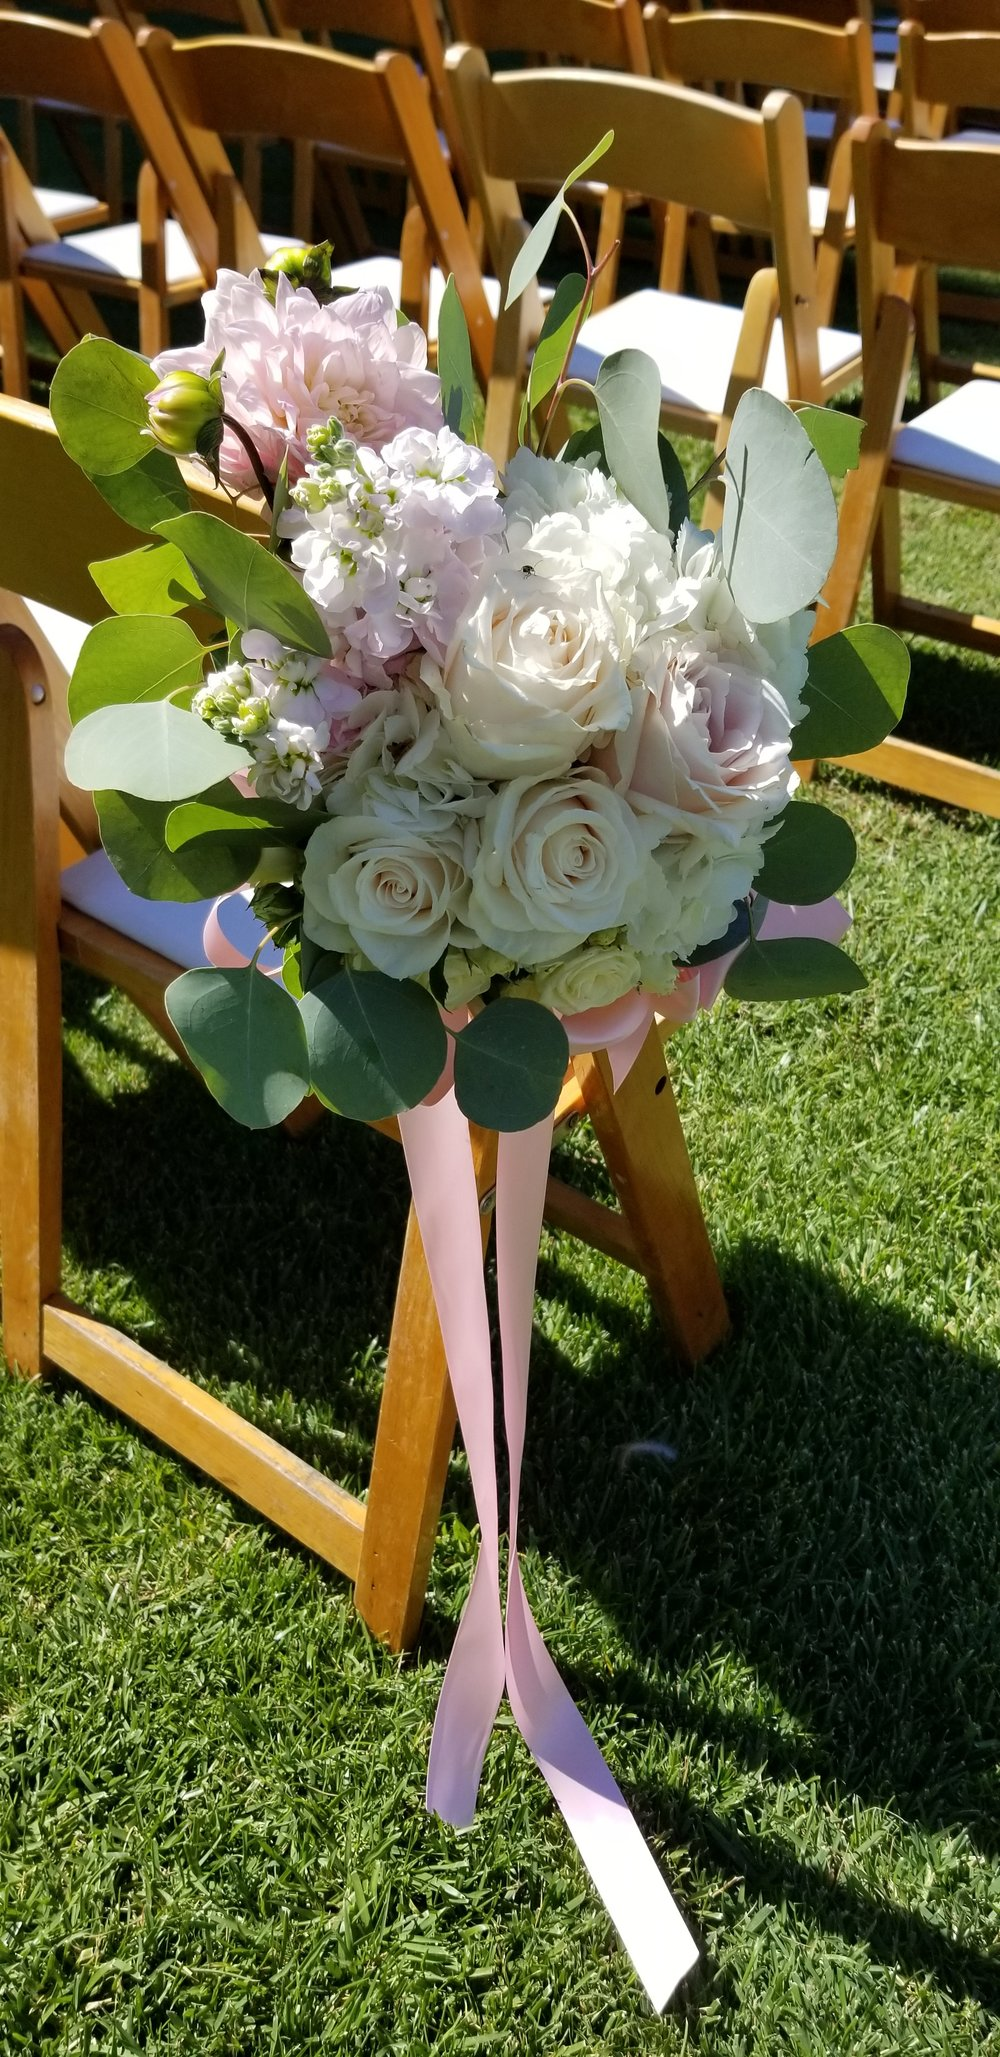 Petal Town - Trentadue Winery 2018-07-14 Aisle chair bouquet.jpg